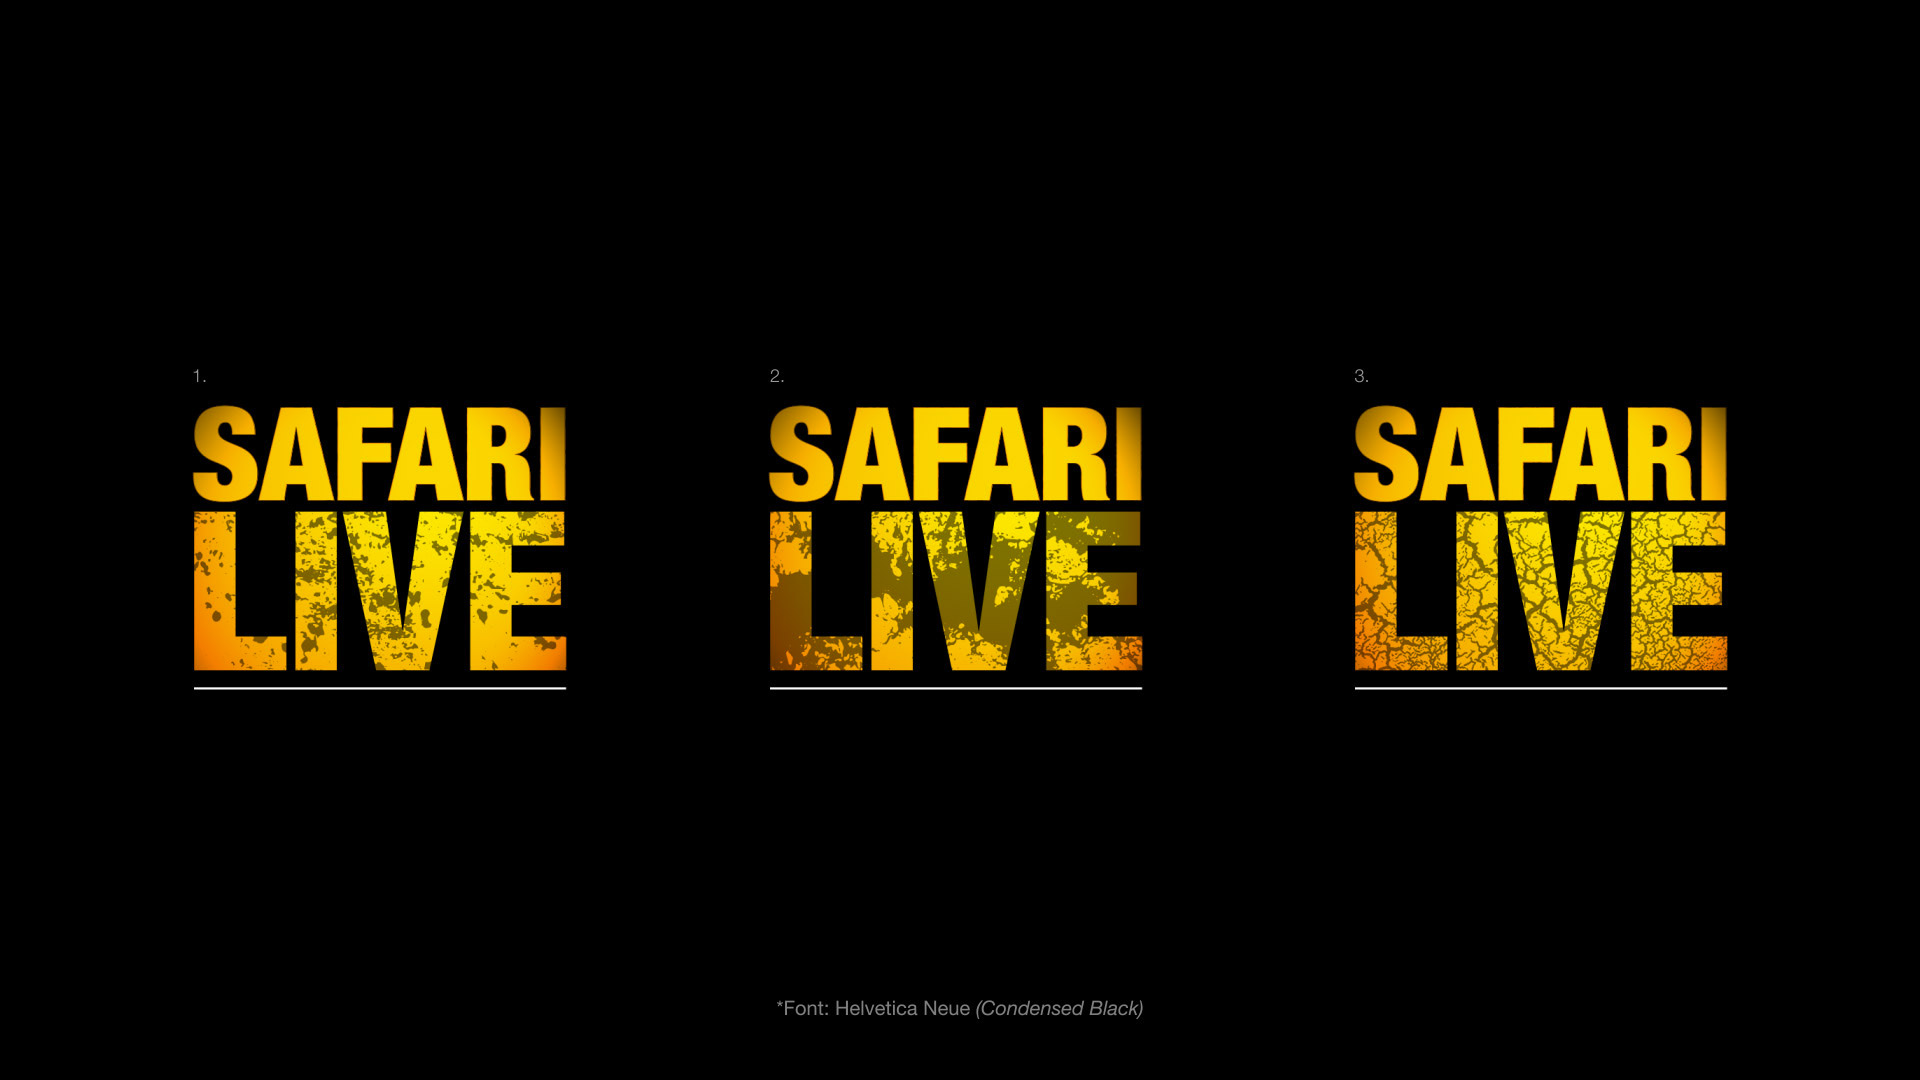 NAT_GEO_SAFARI_LIVE_INITIAL_CONCEPTS_16TH_OCT_17-24